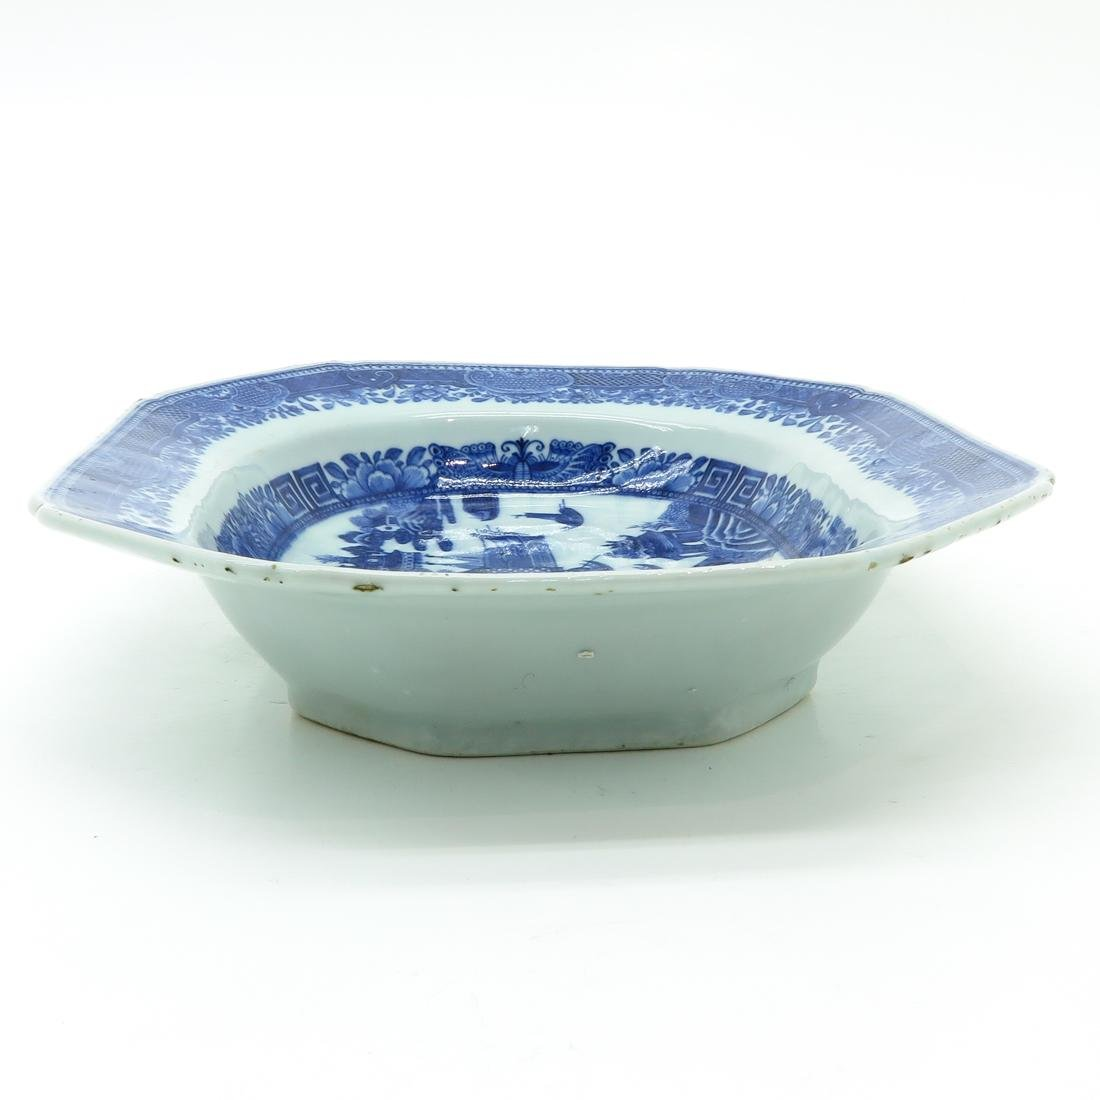 Serving Plate - 6